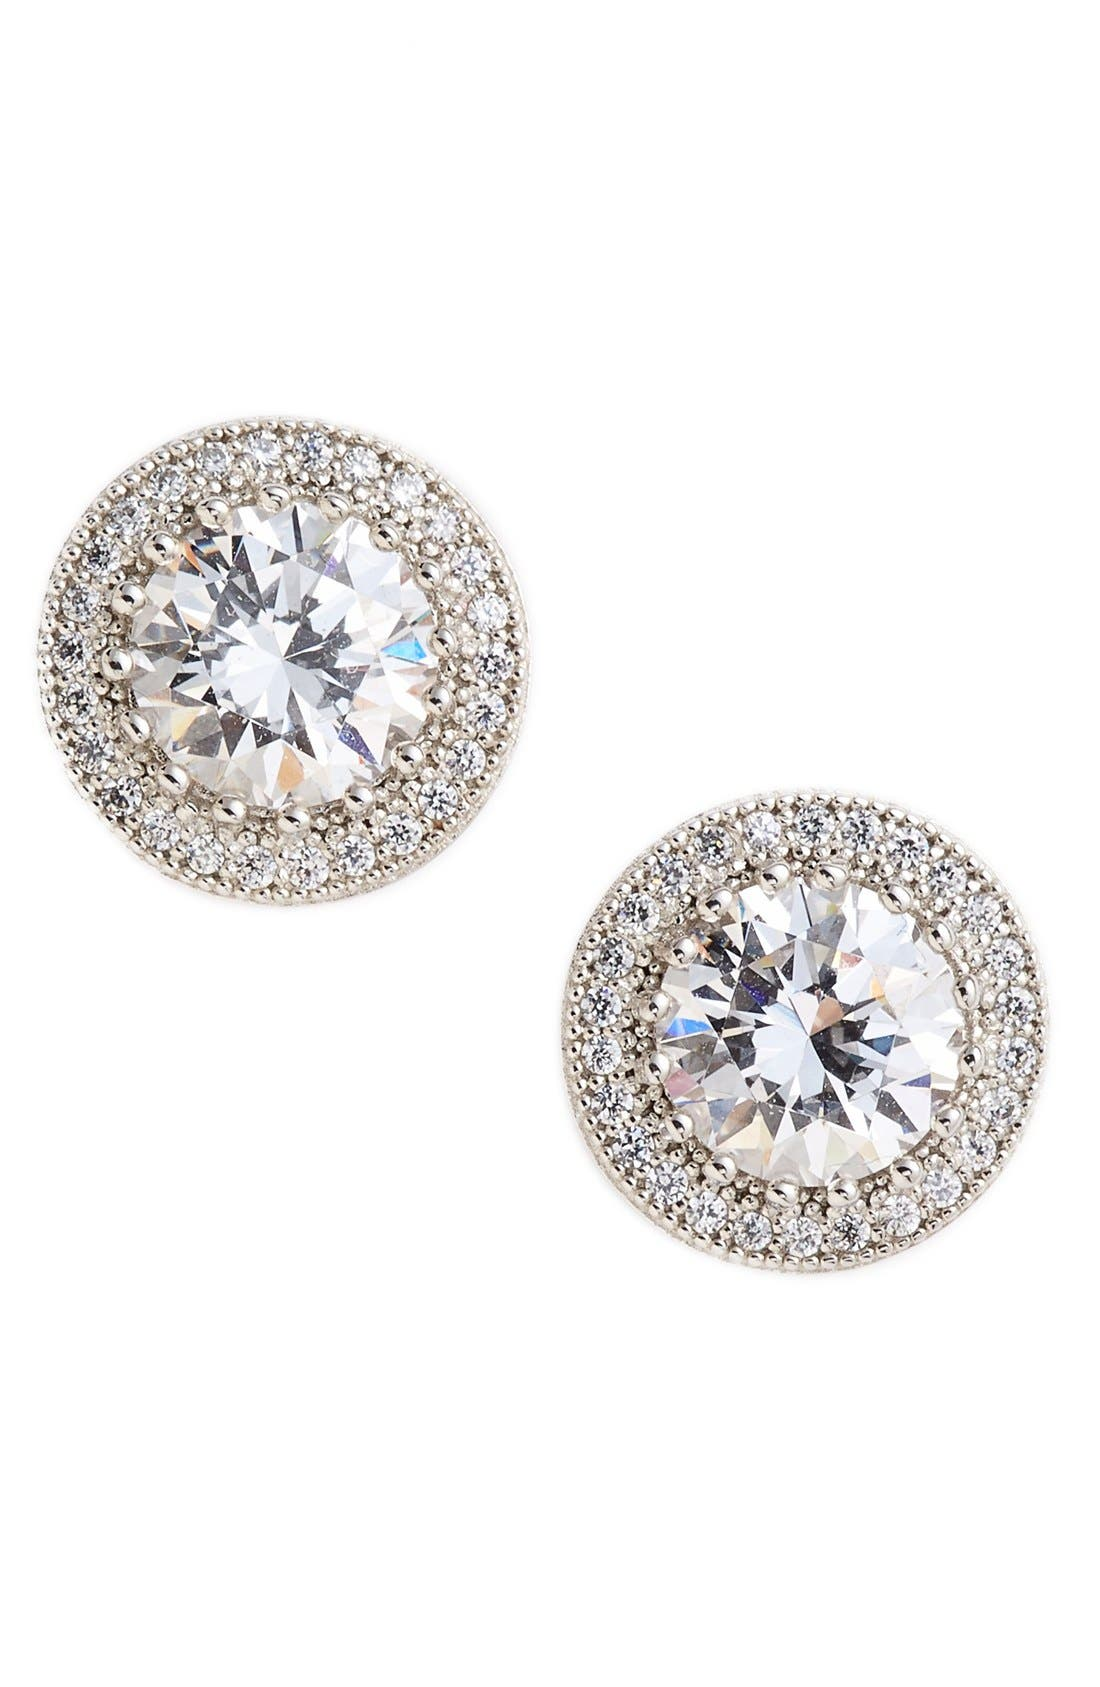 'Lassaire' Stud Earrings,                         Main,                         color, SILVER/ CLEAR